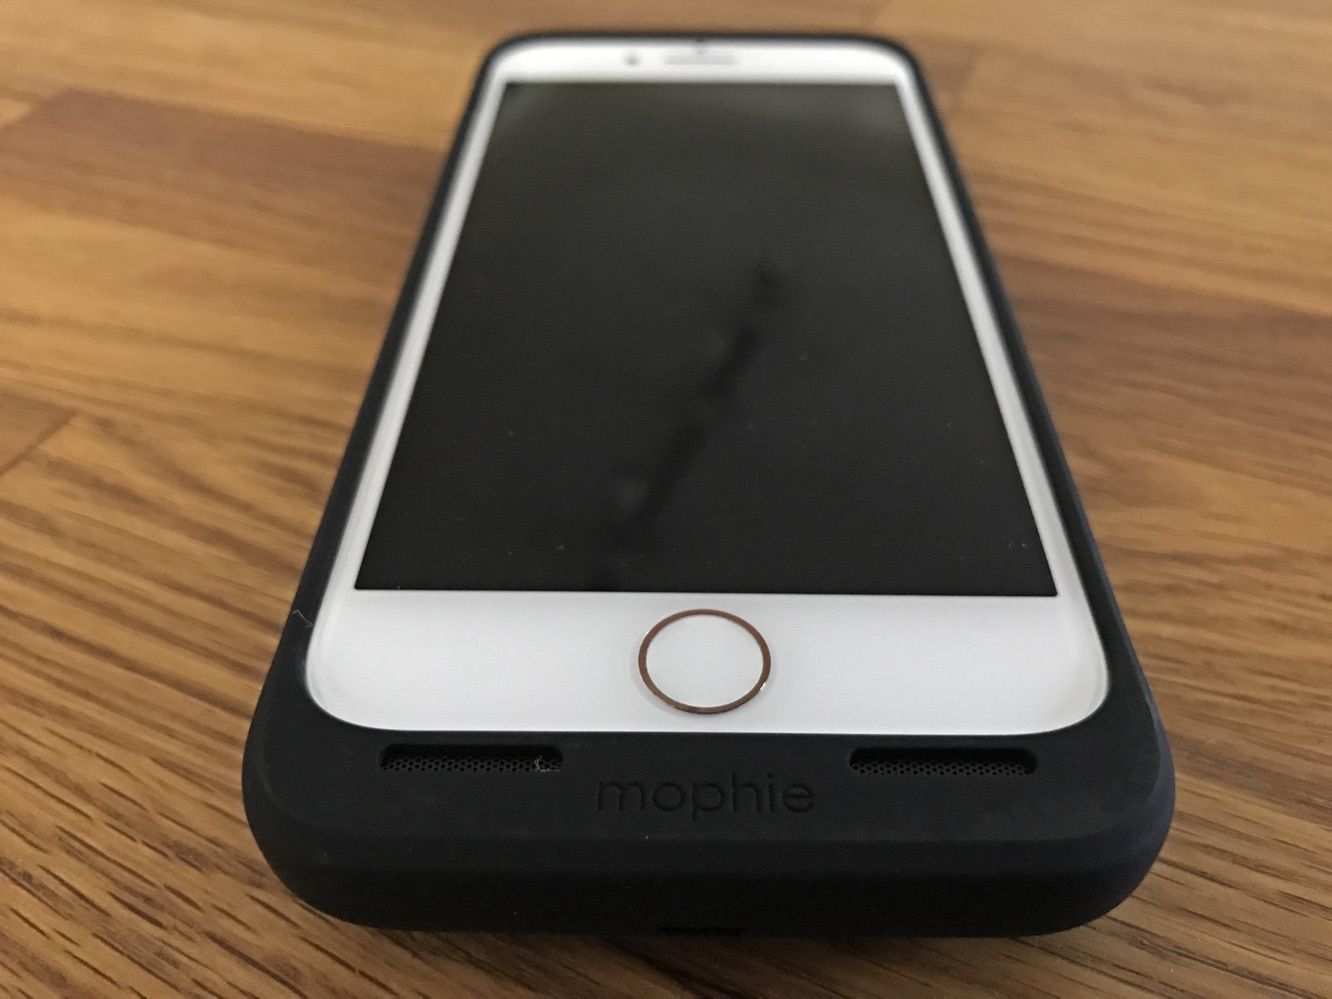 Mophie Juice Pack Air for iPhone 7 and iPhone 7 Plus